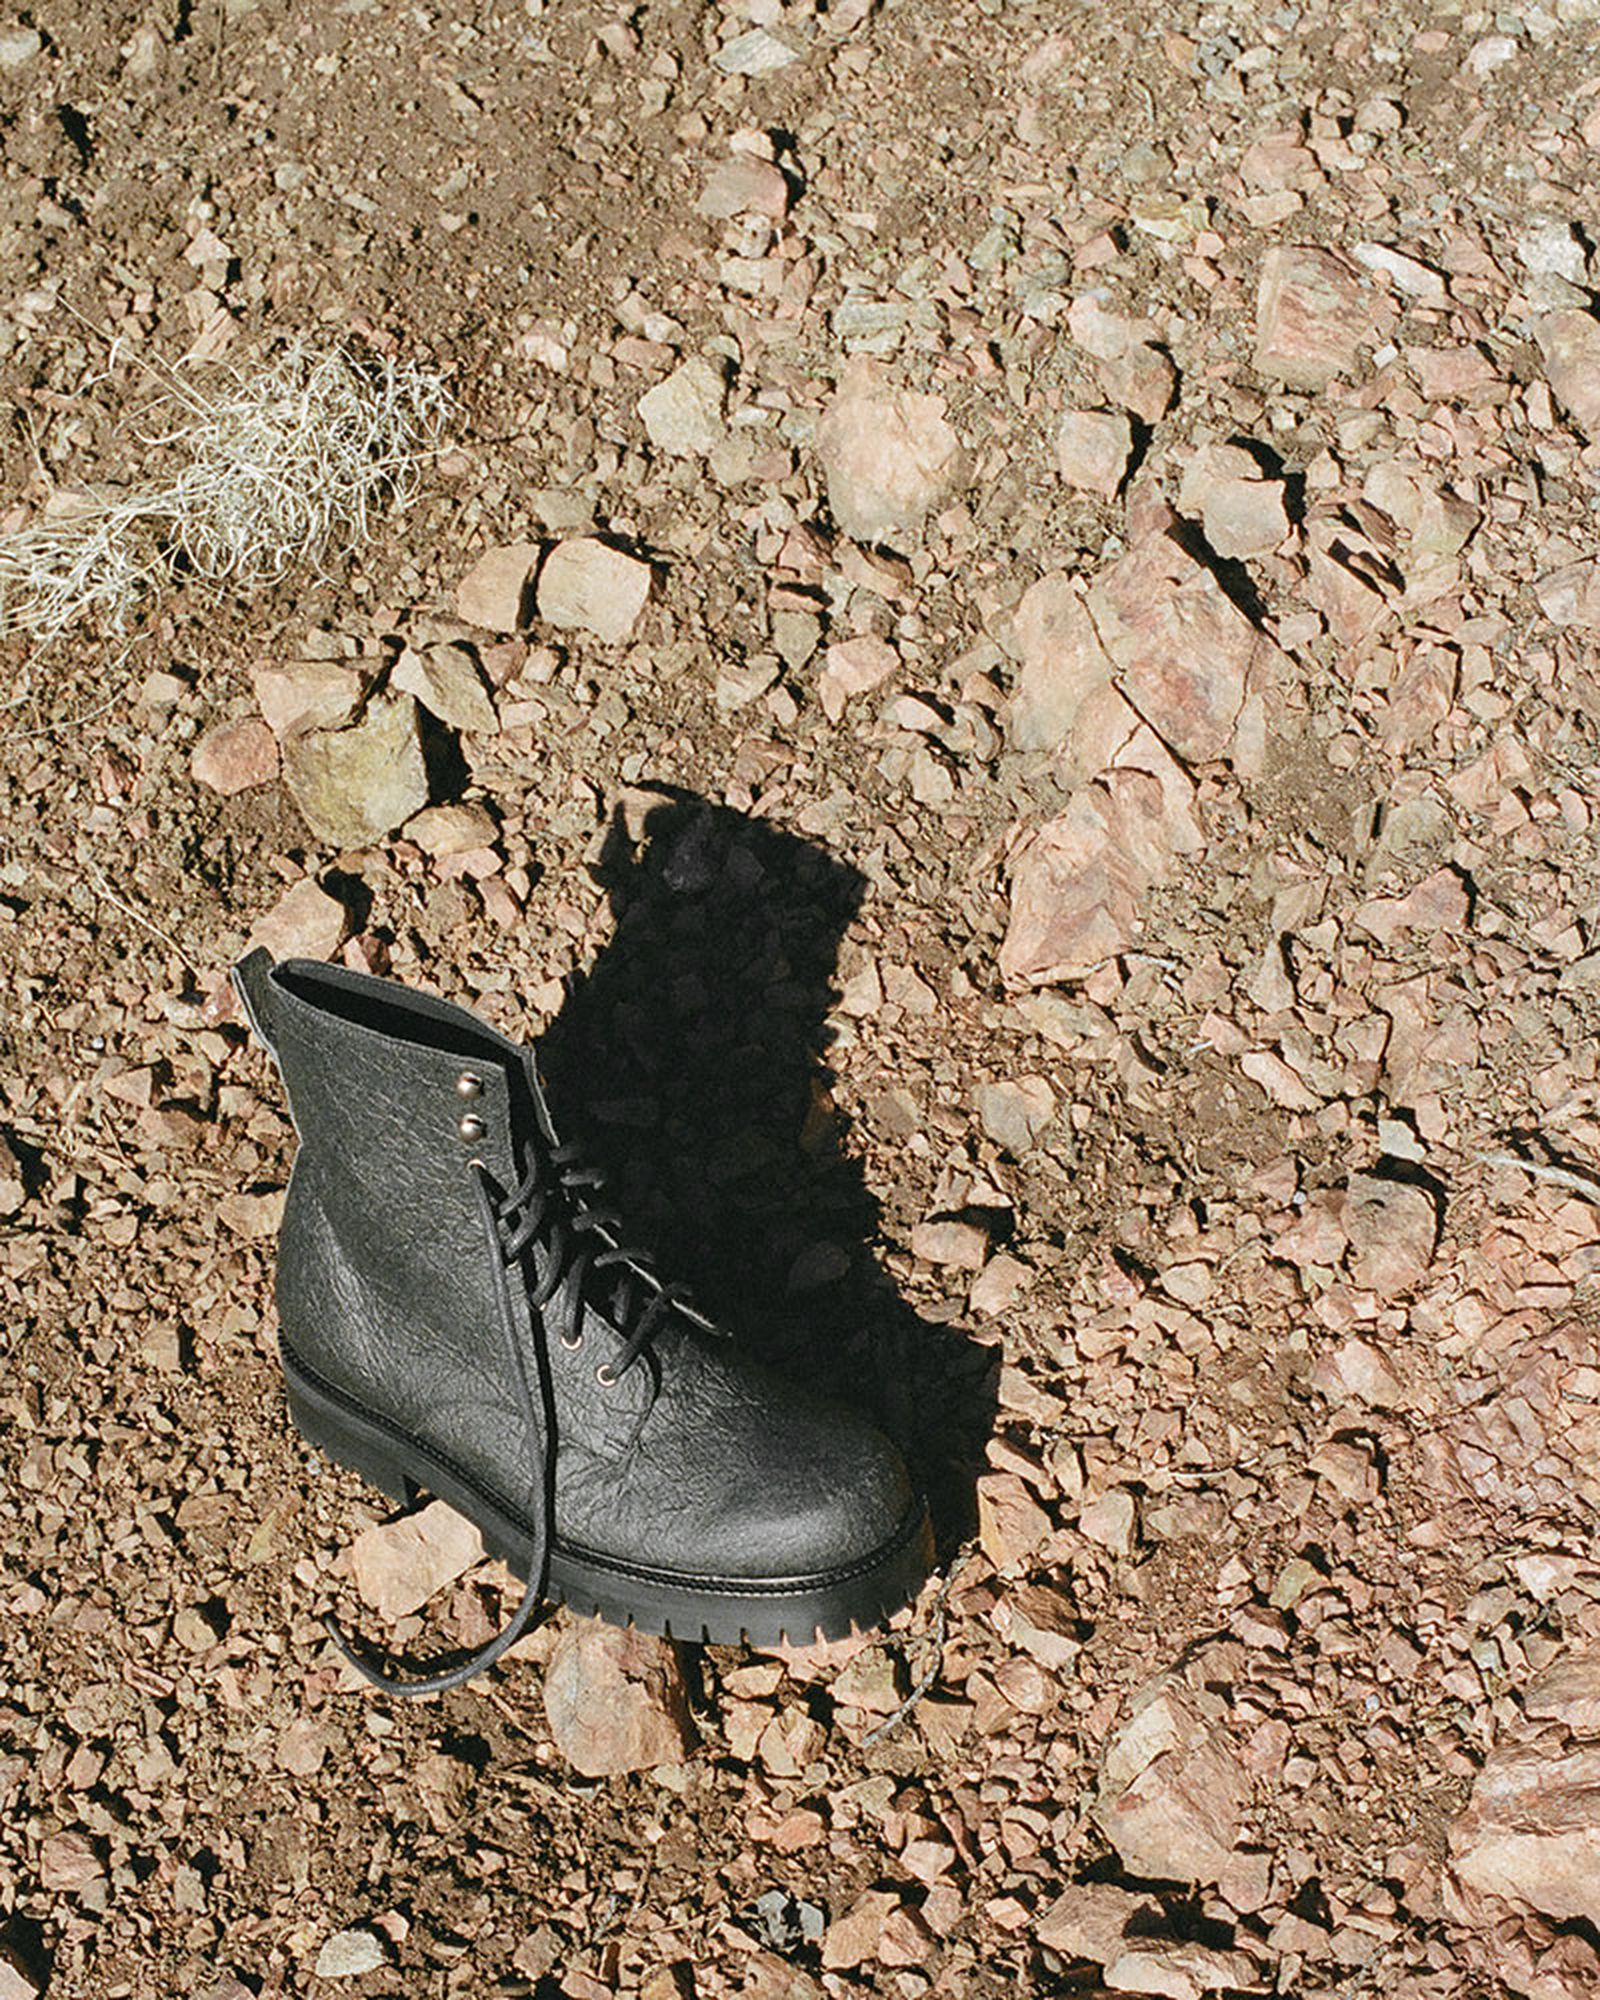 ground-cover-boots-price-release-date-16